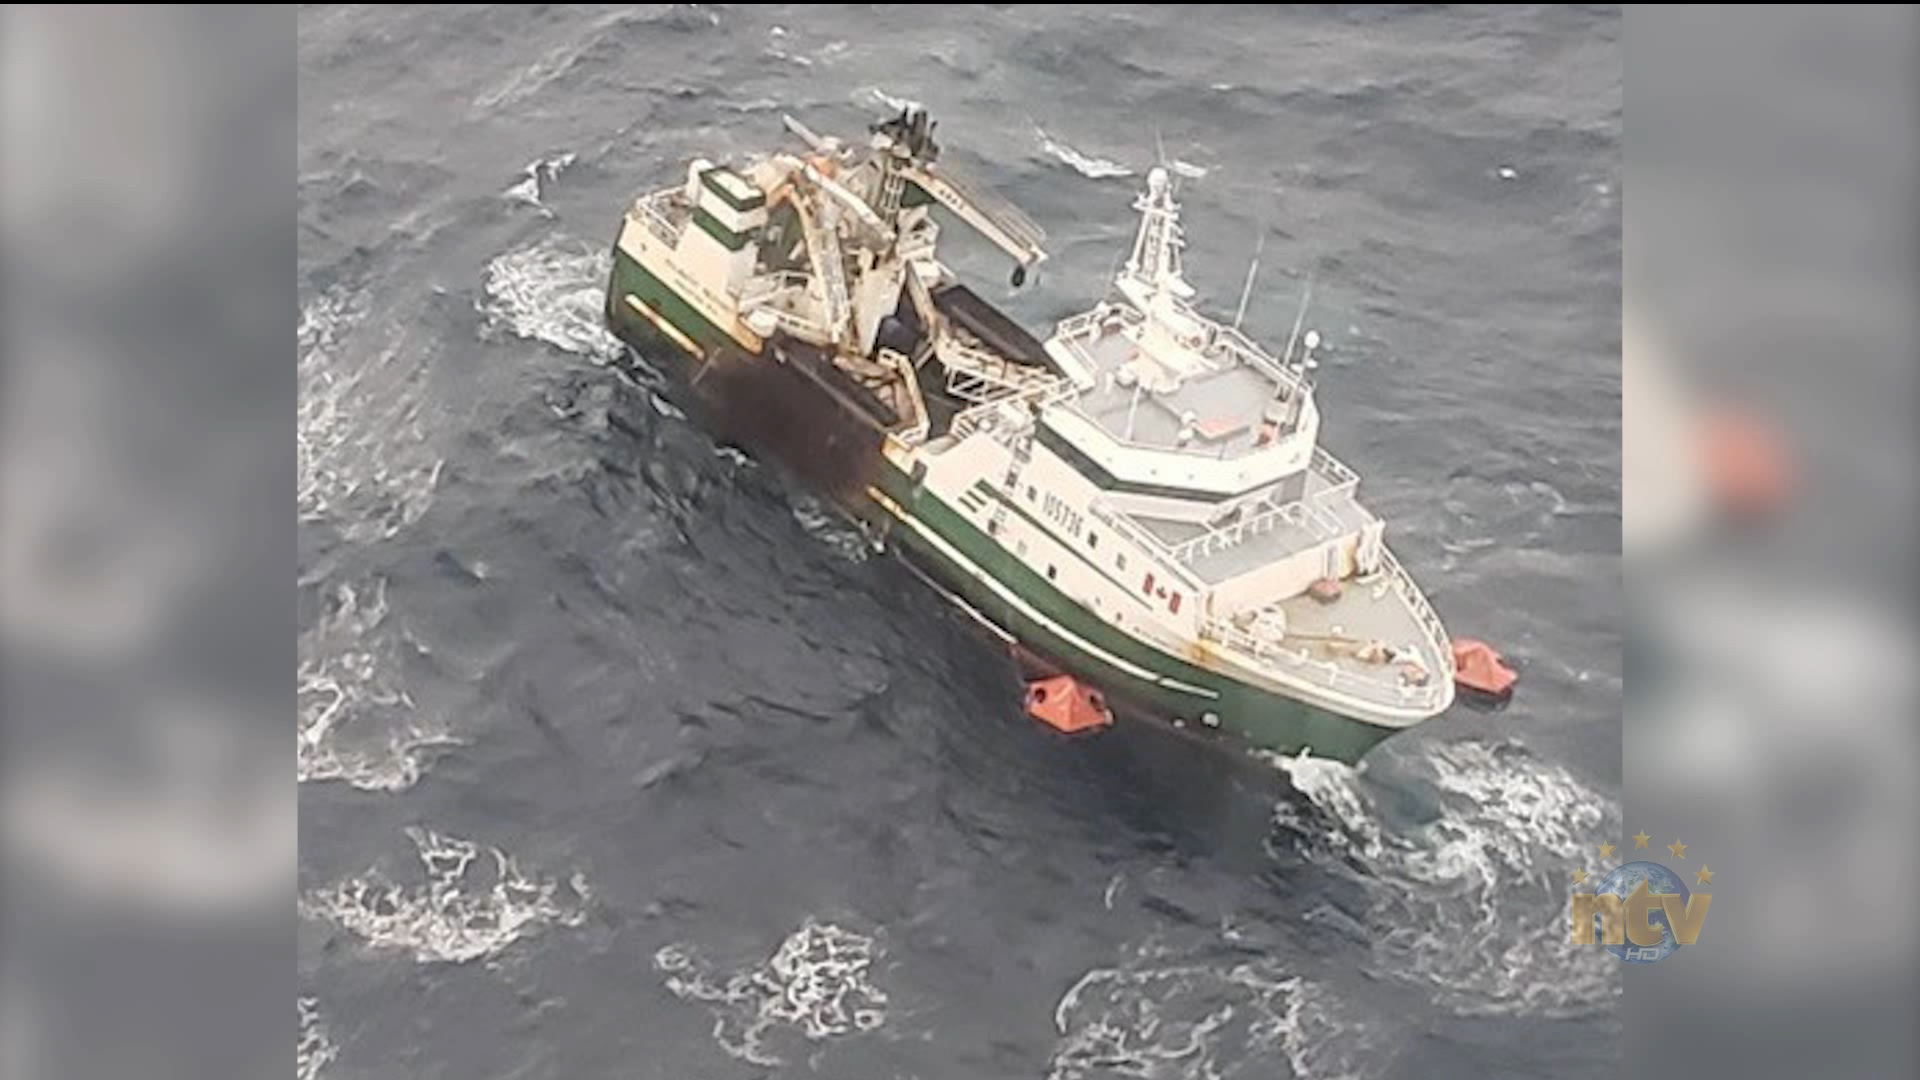 OCI scallop vessel sinks after all crew members rescued